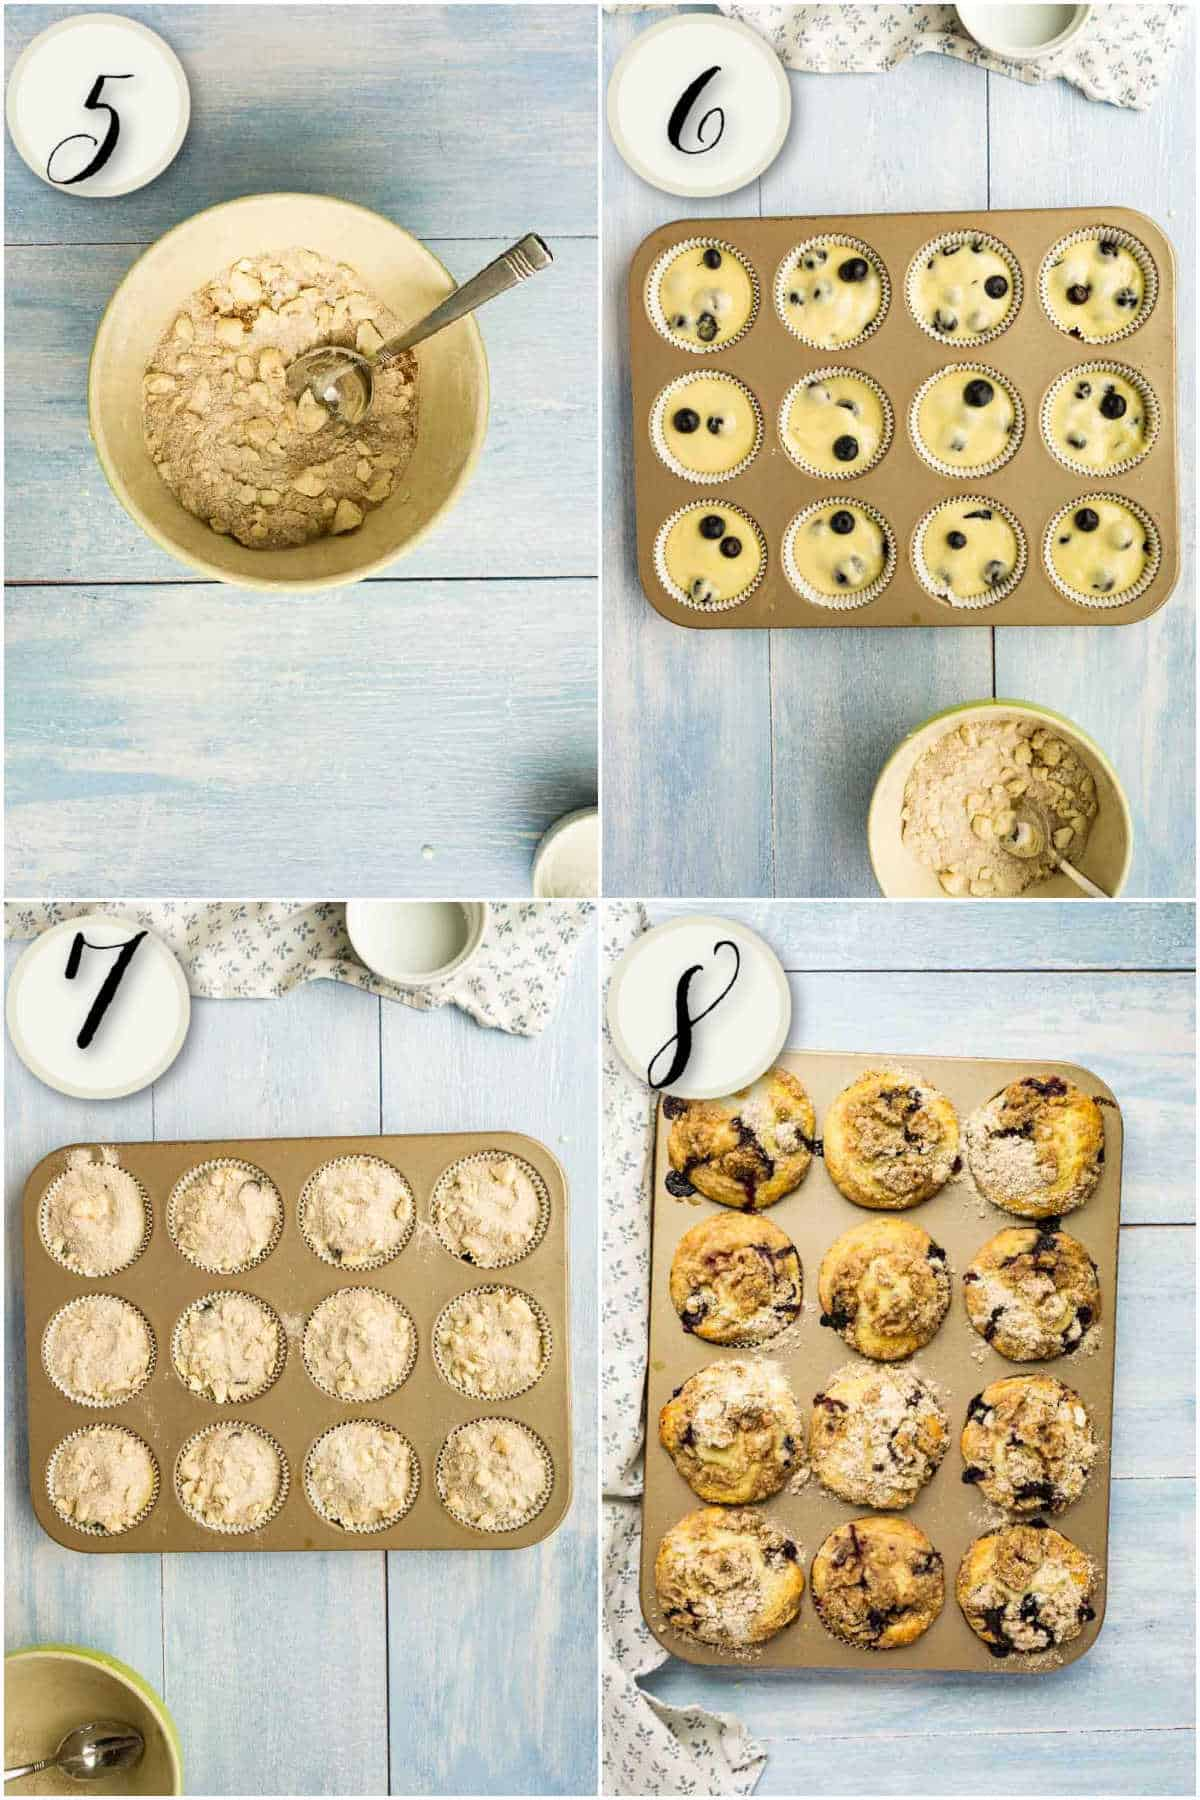 4 images showing mixing crumb topping, adding to muffin batter, fully baked blueberry muffins in tin